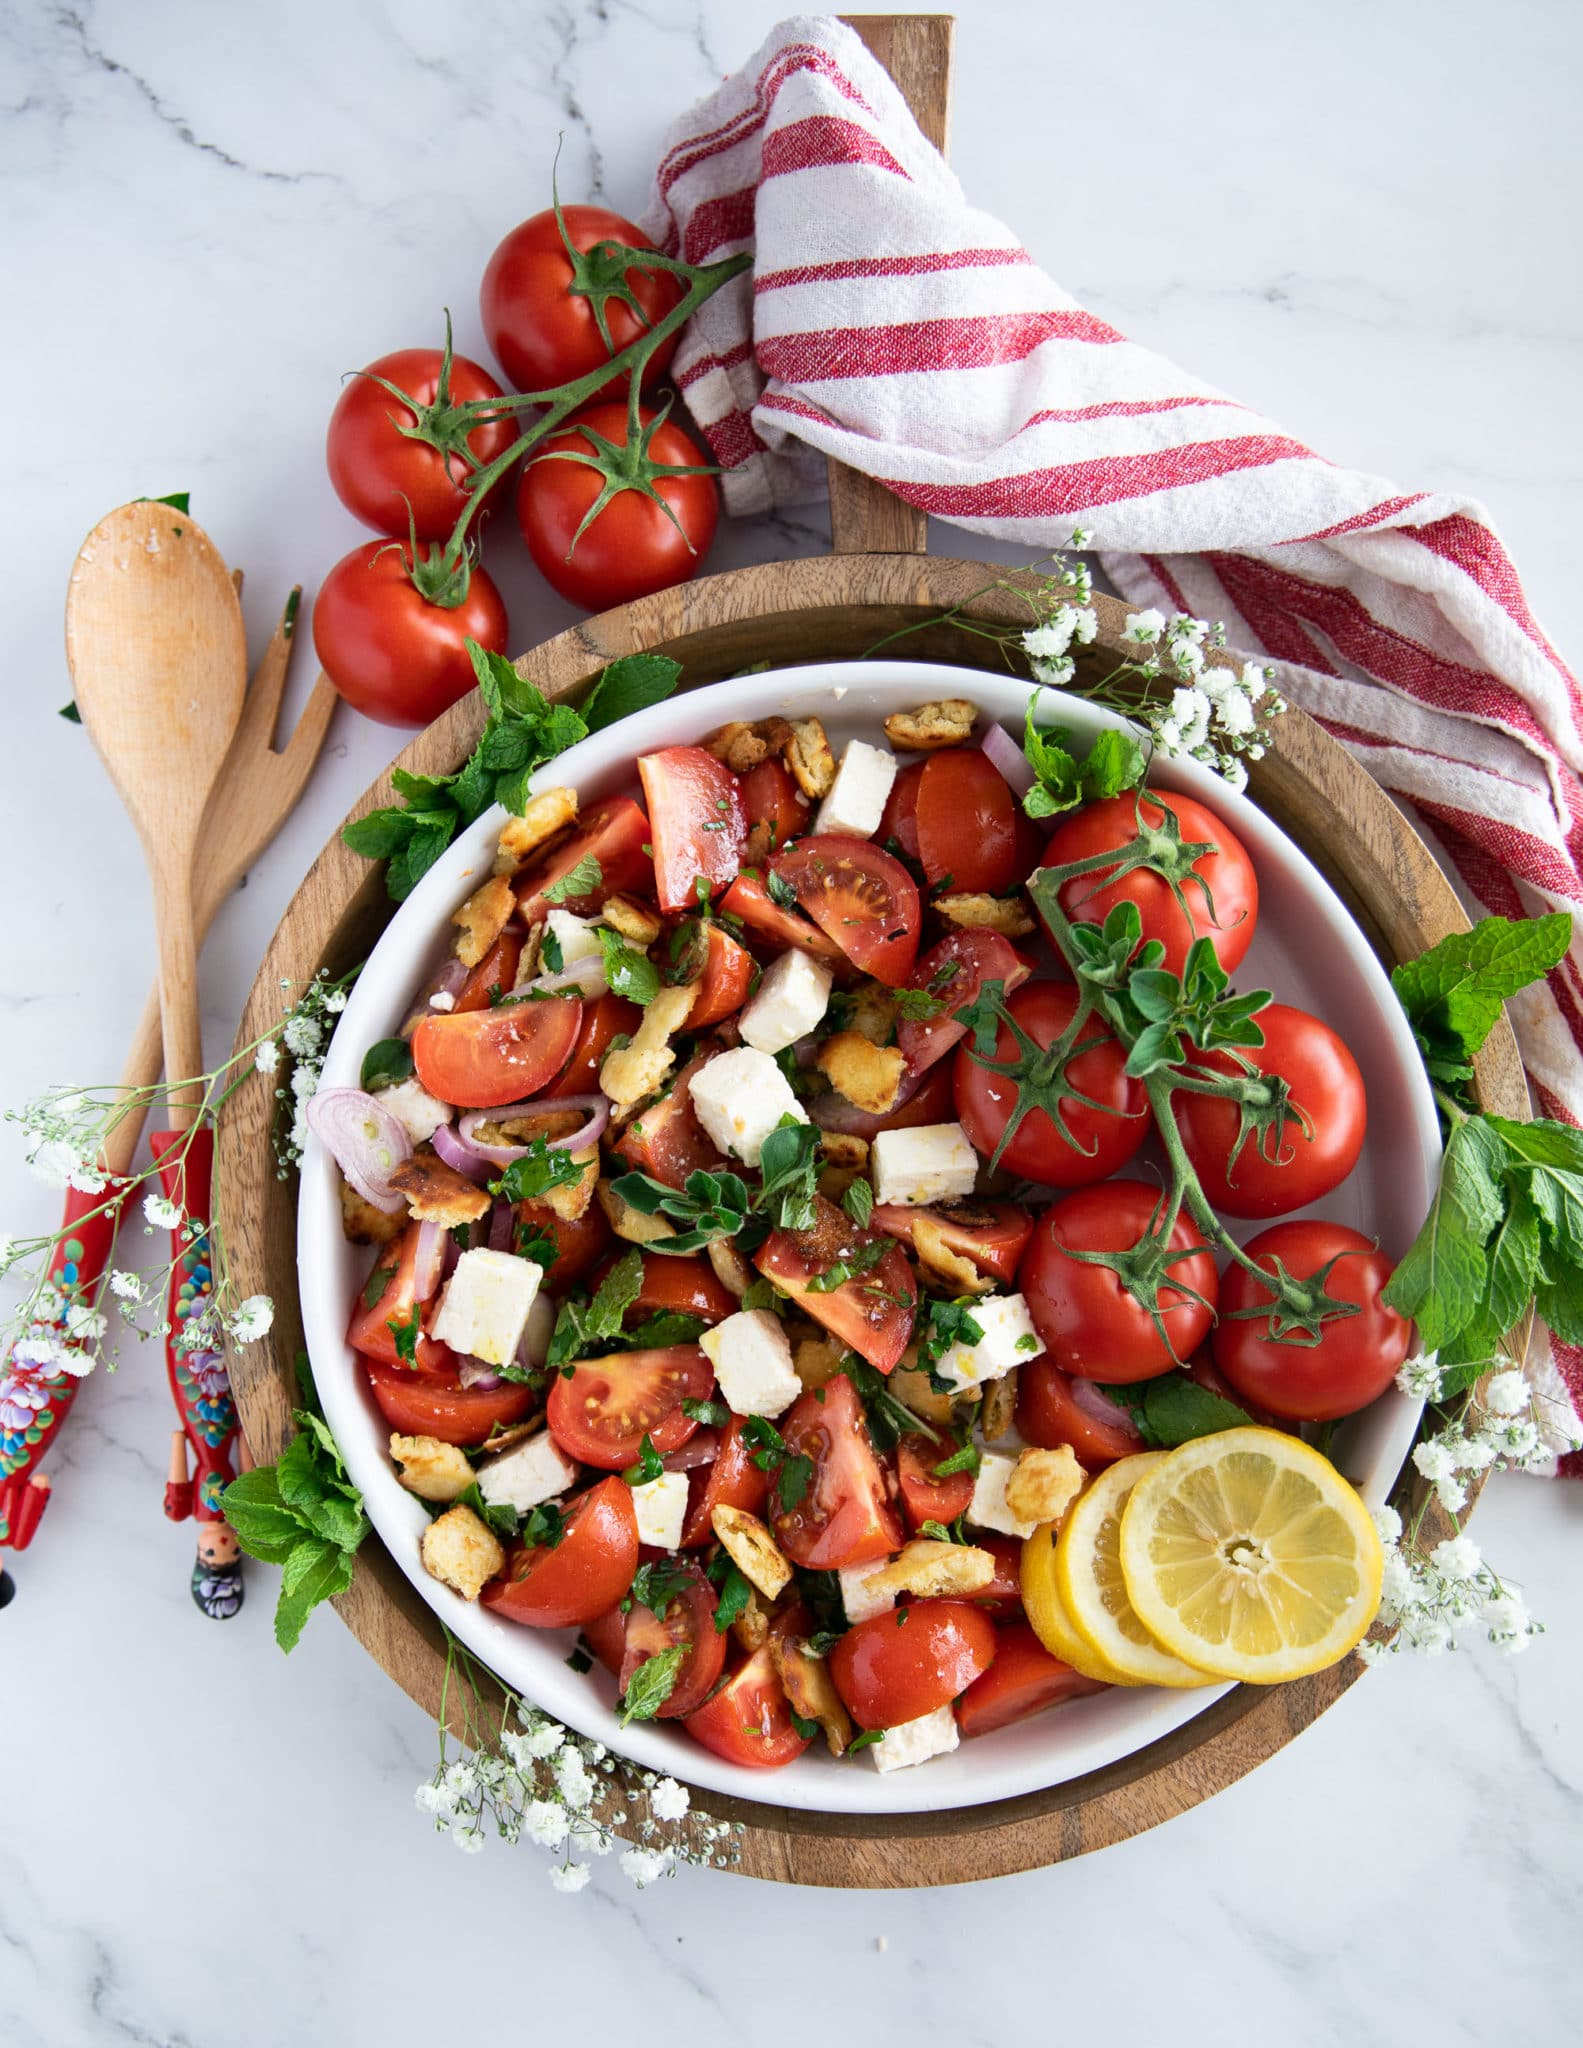 final plate of a tomato salad recipe surrounded by fresh tomatoes, herbs, lemon slices and a tea towel and two salad serving spoons